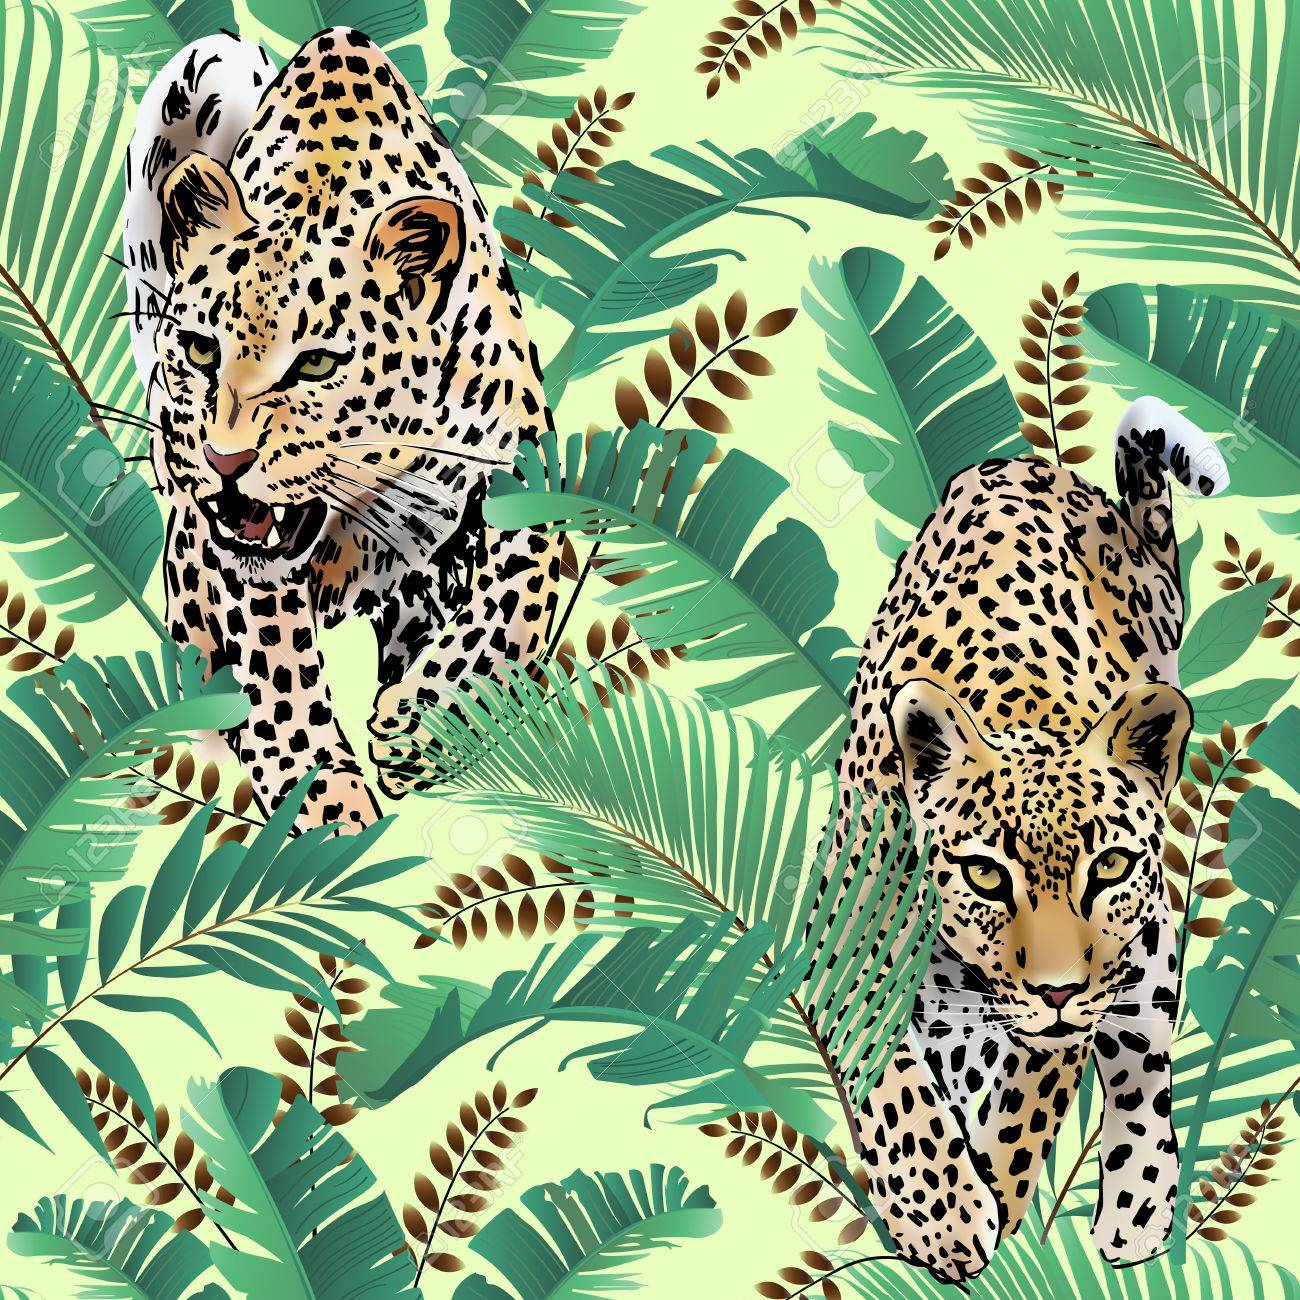 Cheetah and leopards palm leaves tropical watercolor in the jungle seamless background - 81582486